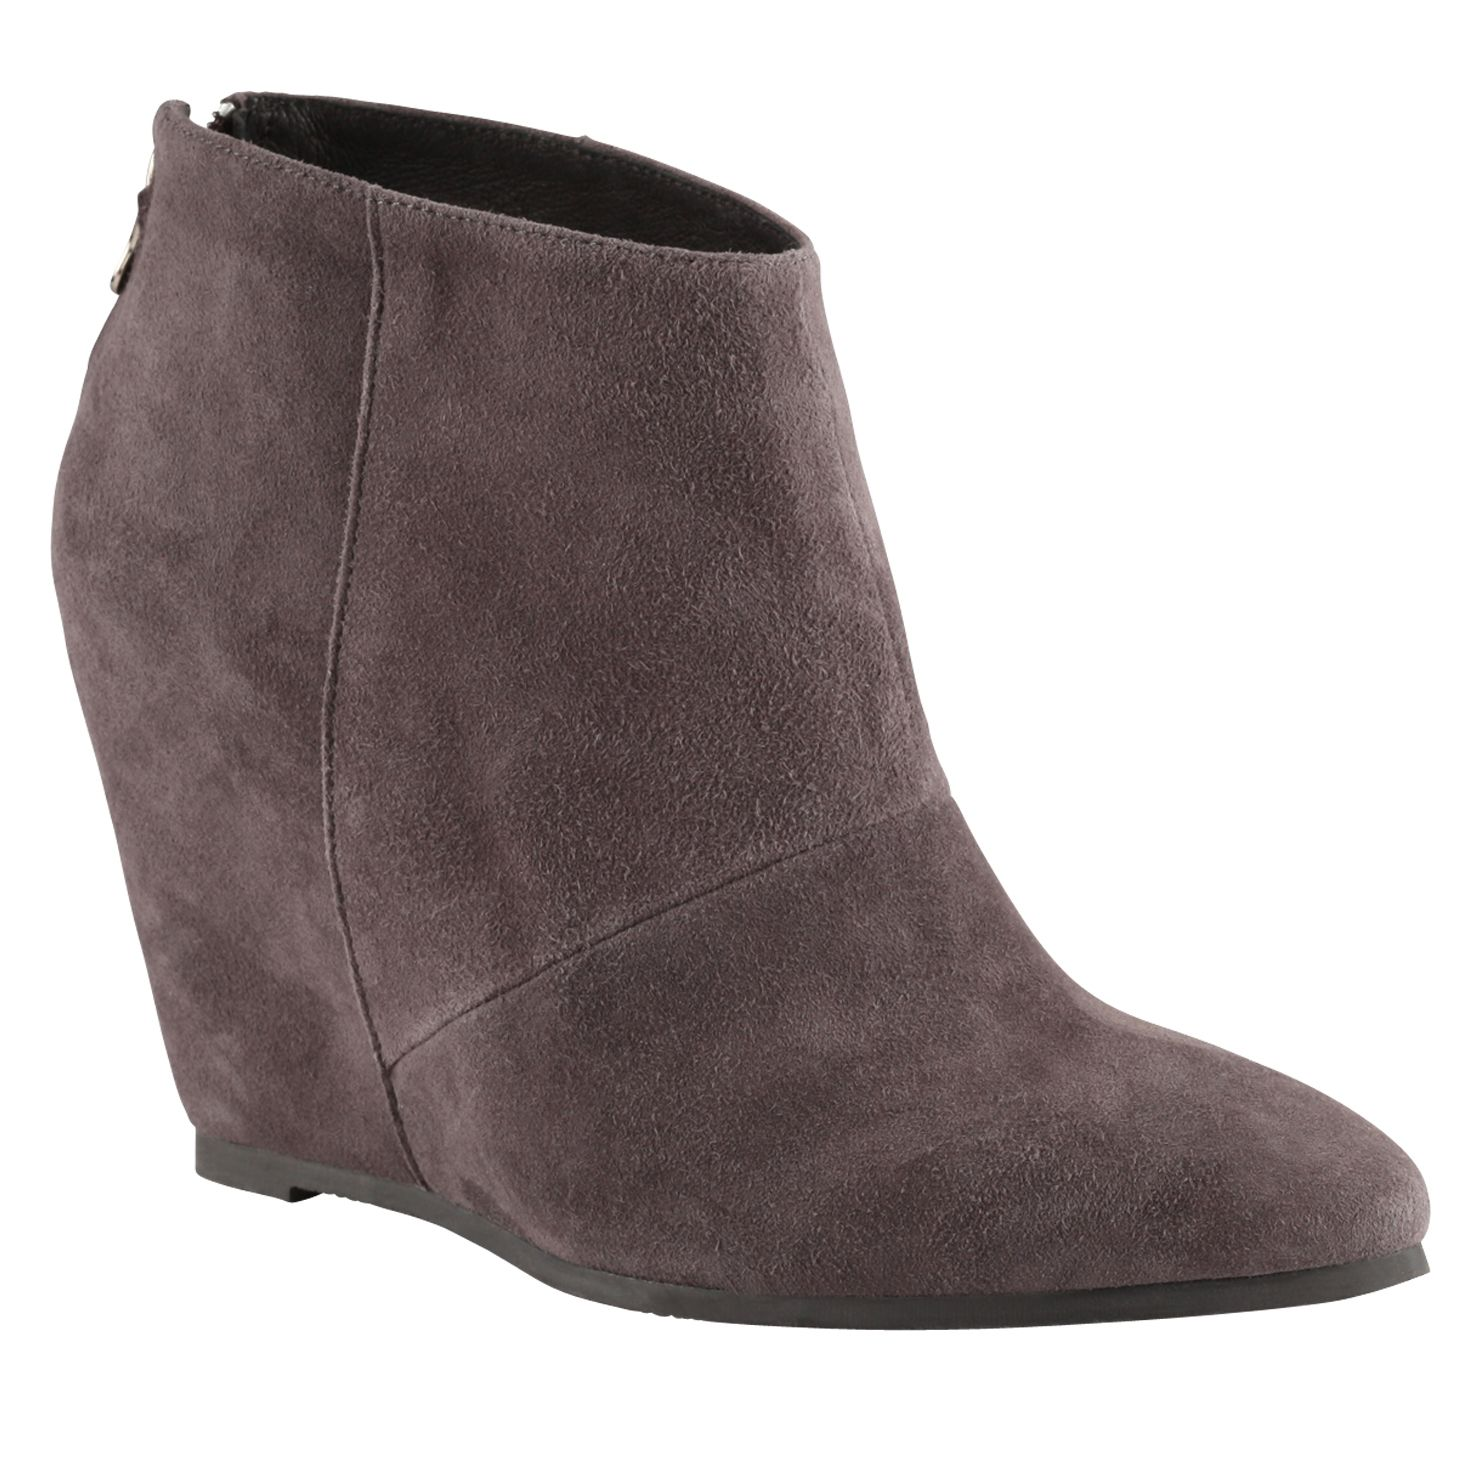 Dwaenia pointed toe wedge boots